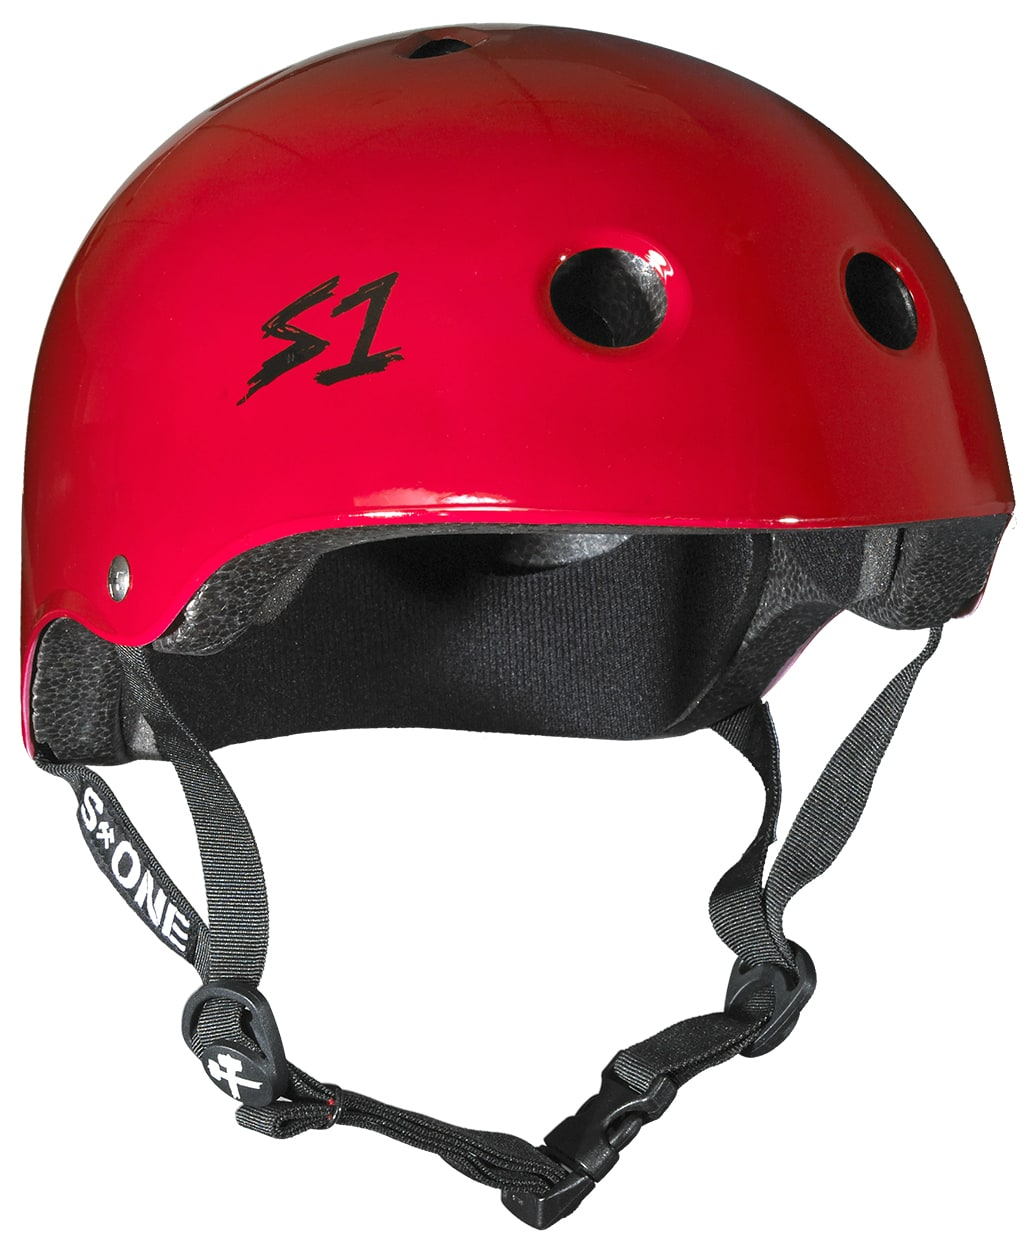 BStock S1 Lifer Multi Impact Helmet  Red Gloss  Extra Large 22.5  (Cosmetic Damage)